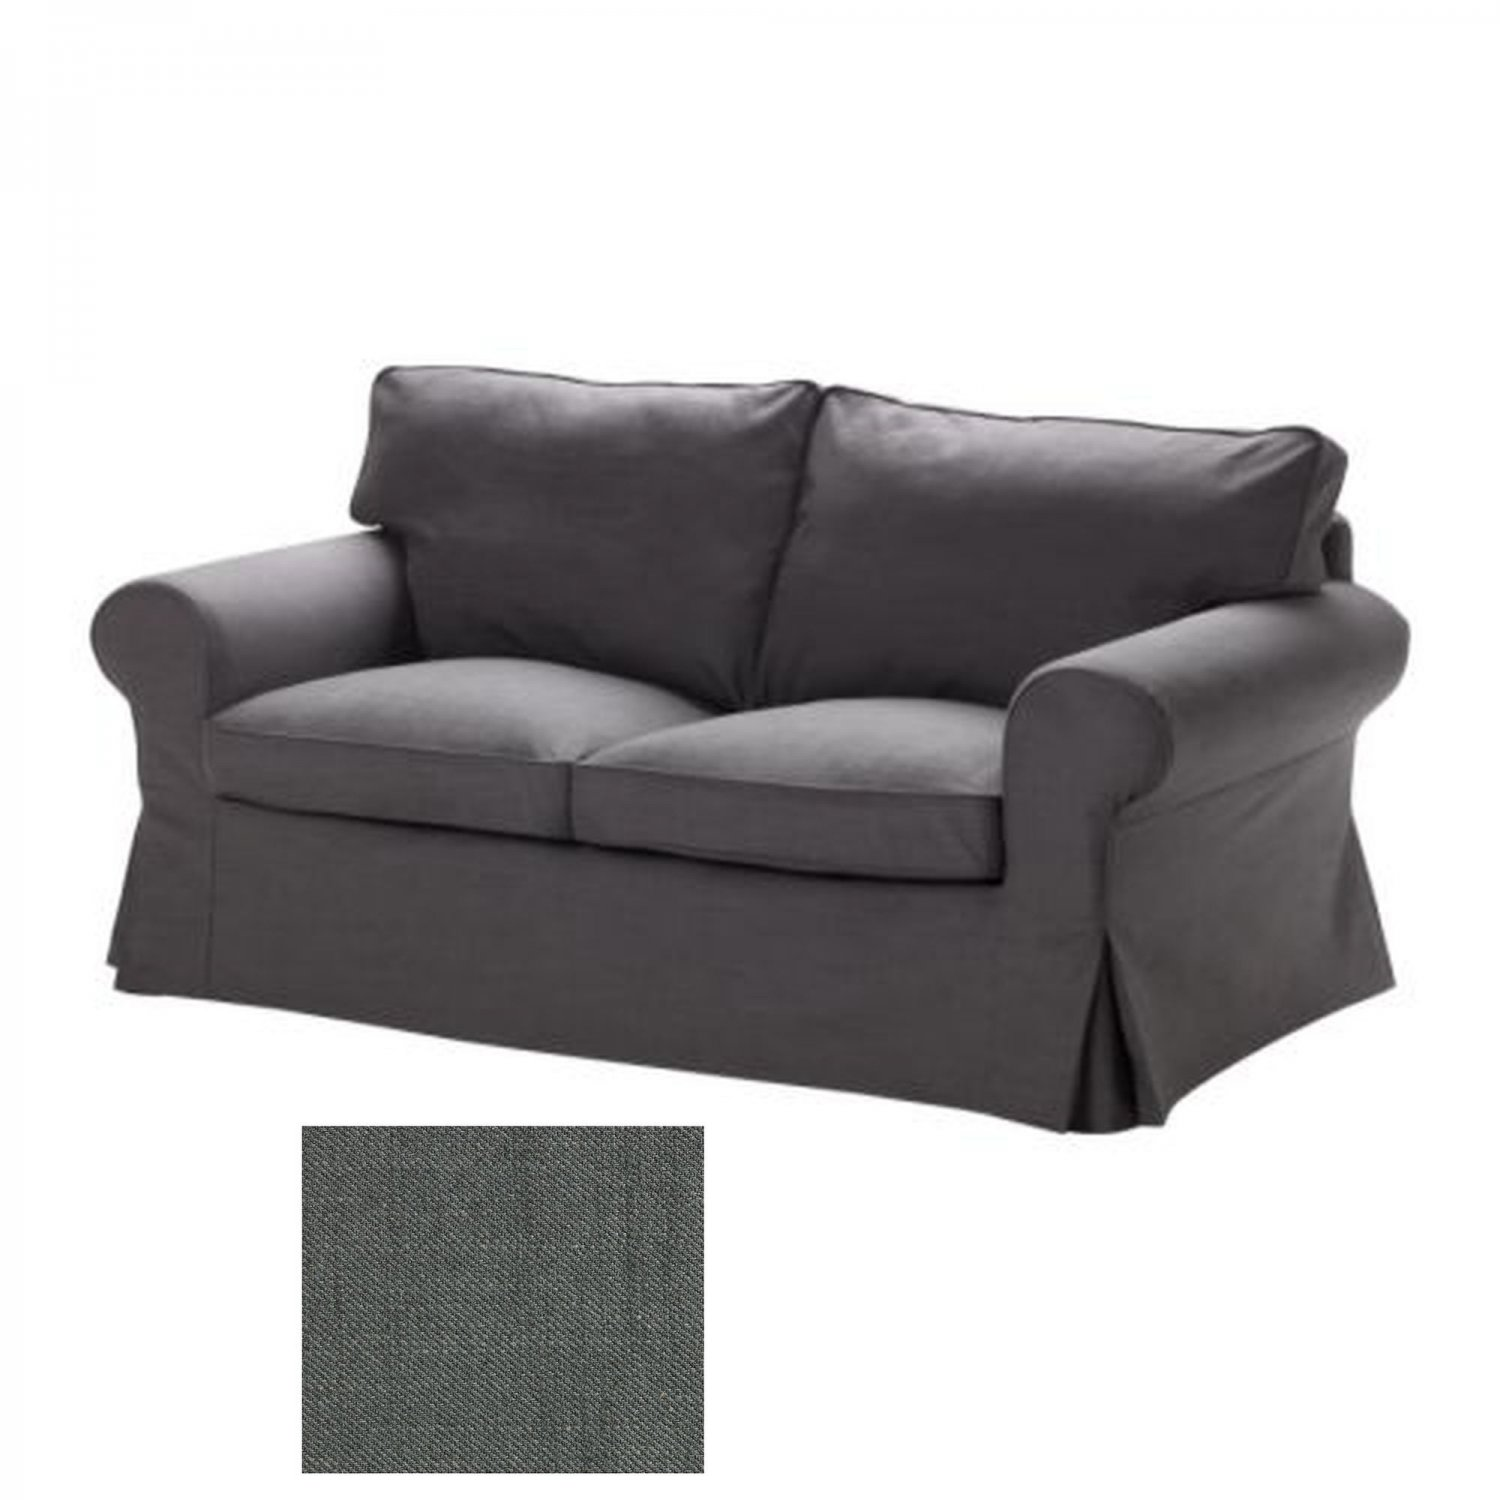 IKEA EKTORP 2 Seat Sofa SLIPCOVER Loveseat Cover SVANBY GRAY Grey